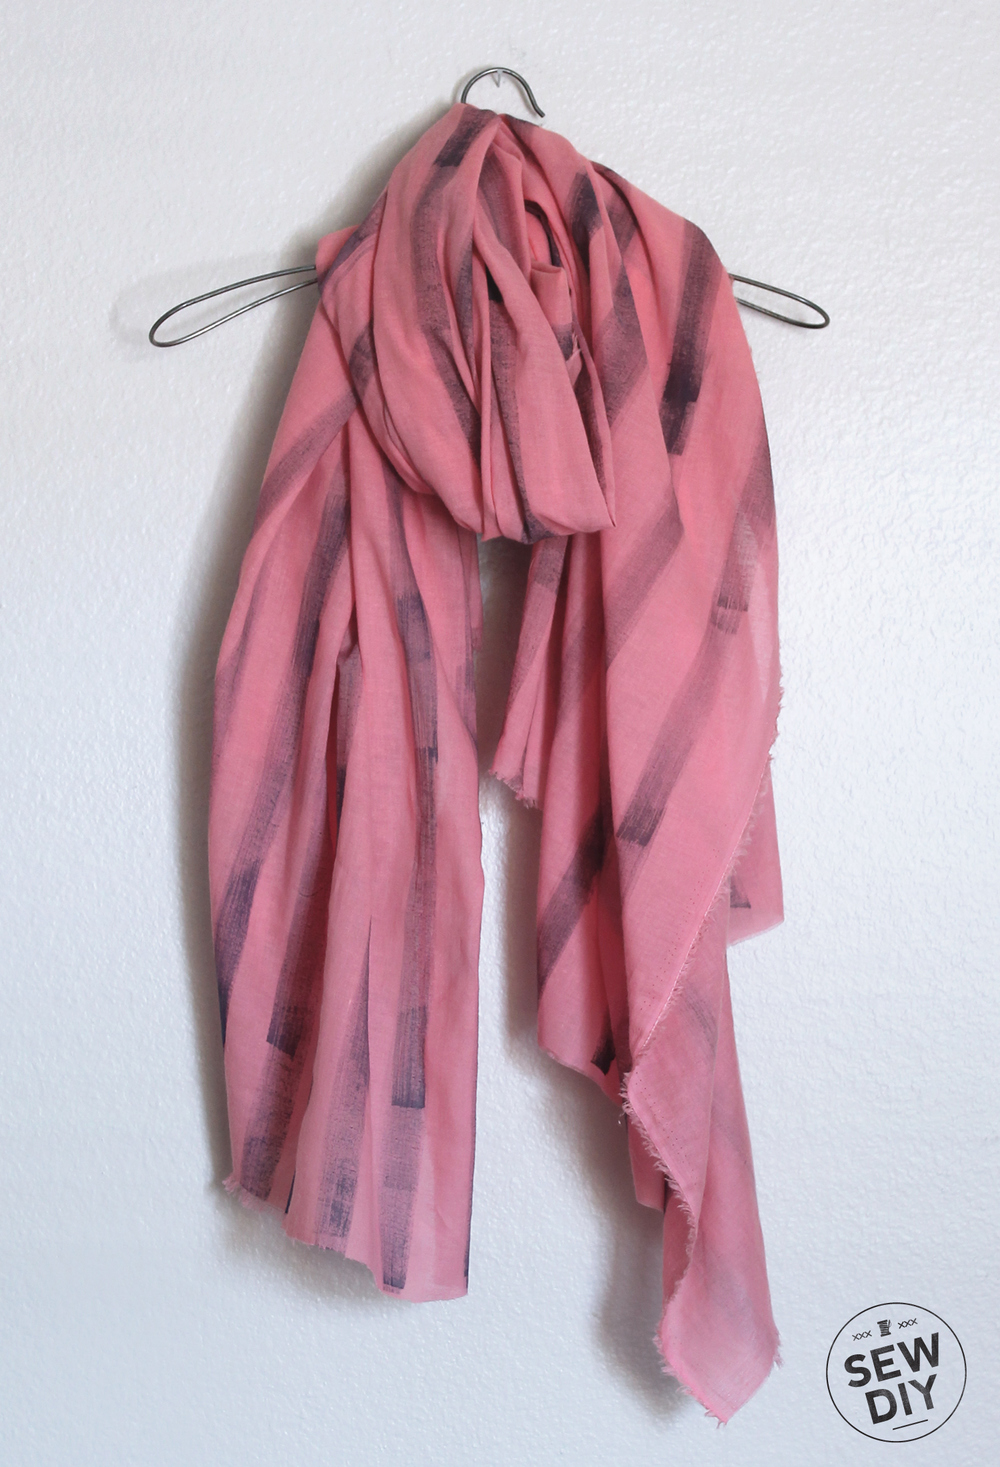 Diy tutorial painted scarf anthro knock off sew diy what do you think will you make yourself a painted scarf this spring or maybe one for mothers day i hope you enjoy the tutorial solutioingenieria Images